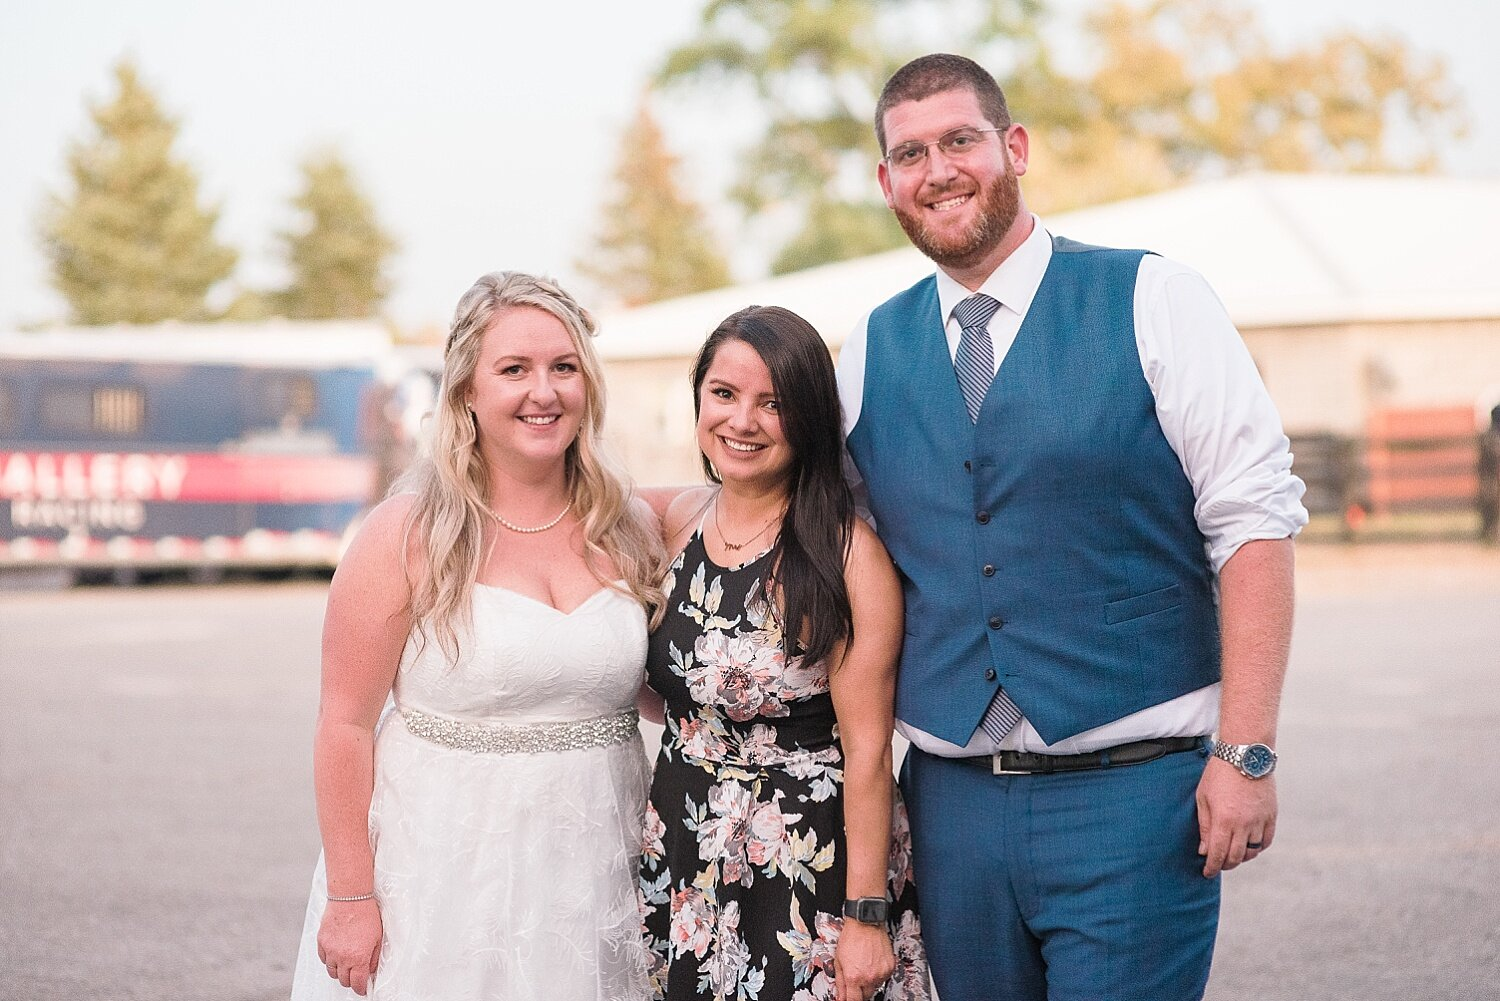 Ashley Flaga, Mosaic Weddings, was their wonderful planner and one of their best friends! She's wonderful to work with!